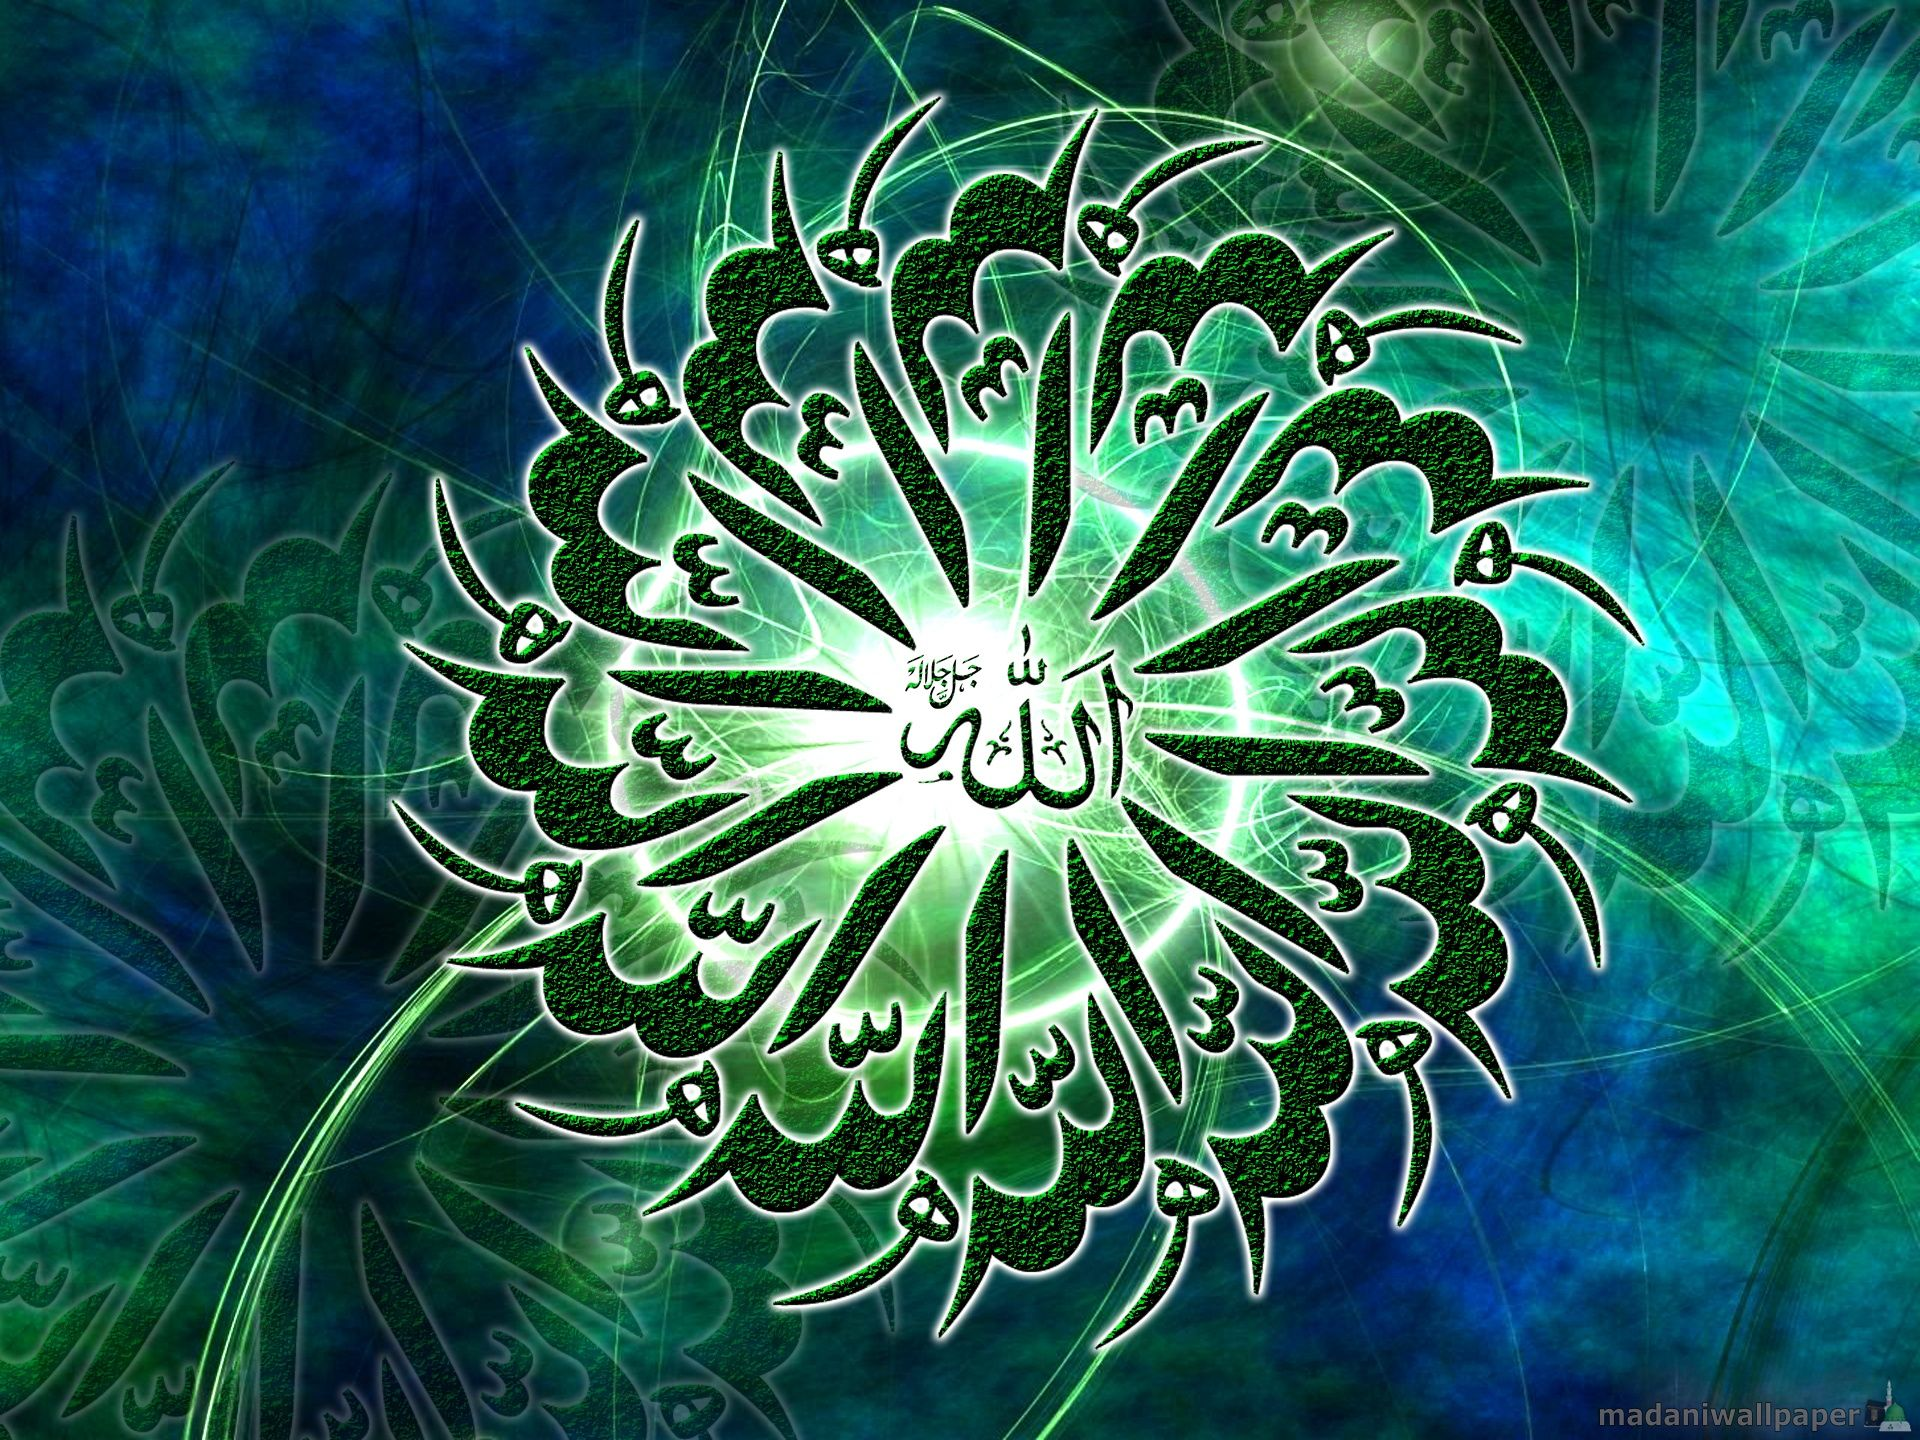 Best Quality Allah Calligraphy Wallpaper 2012 Madaniwallpaper Com Wall Allah Calligraphy Calligraphy Wallpaper Islamic Calligraphy